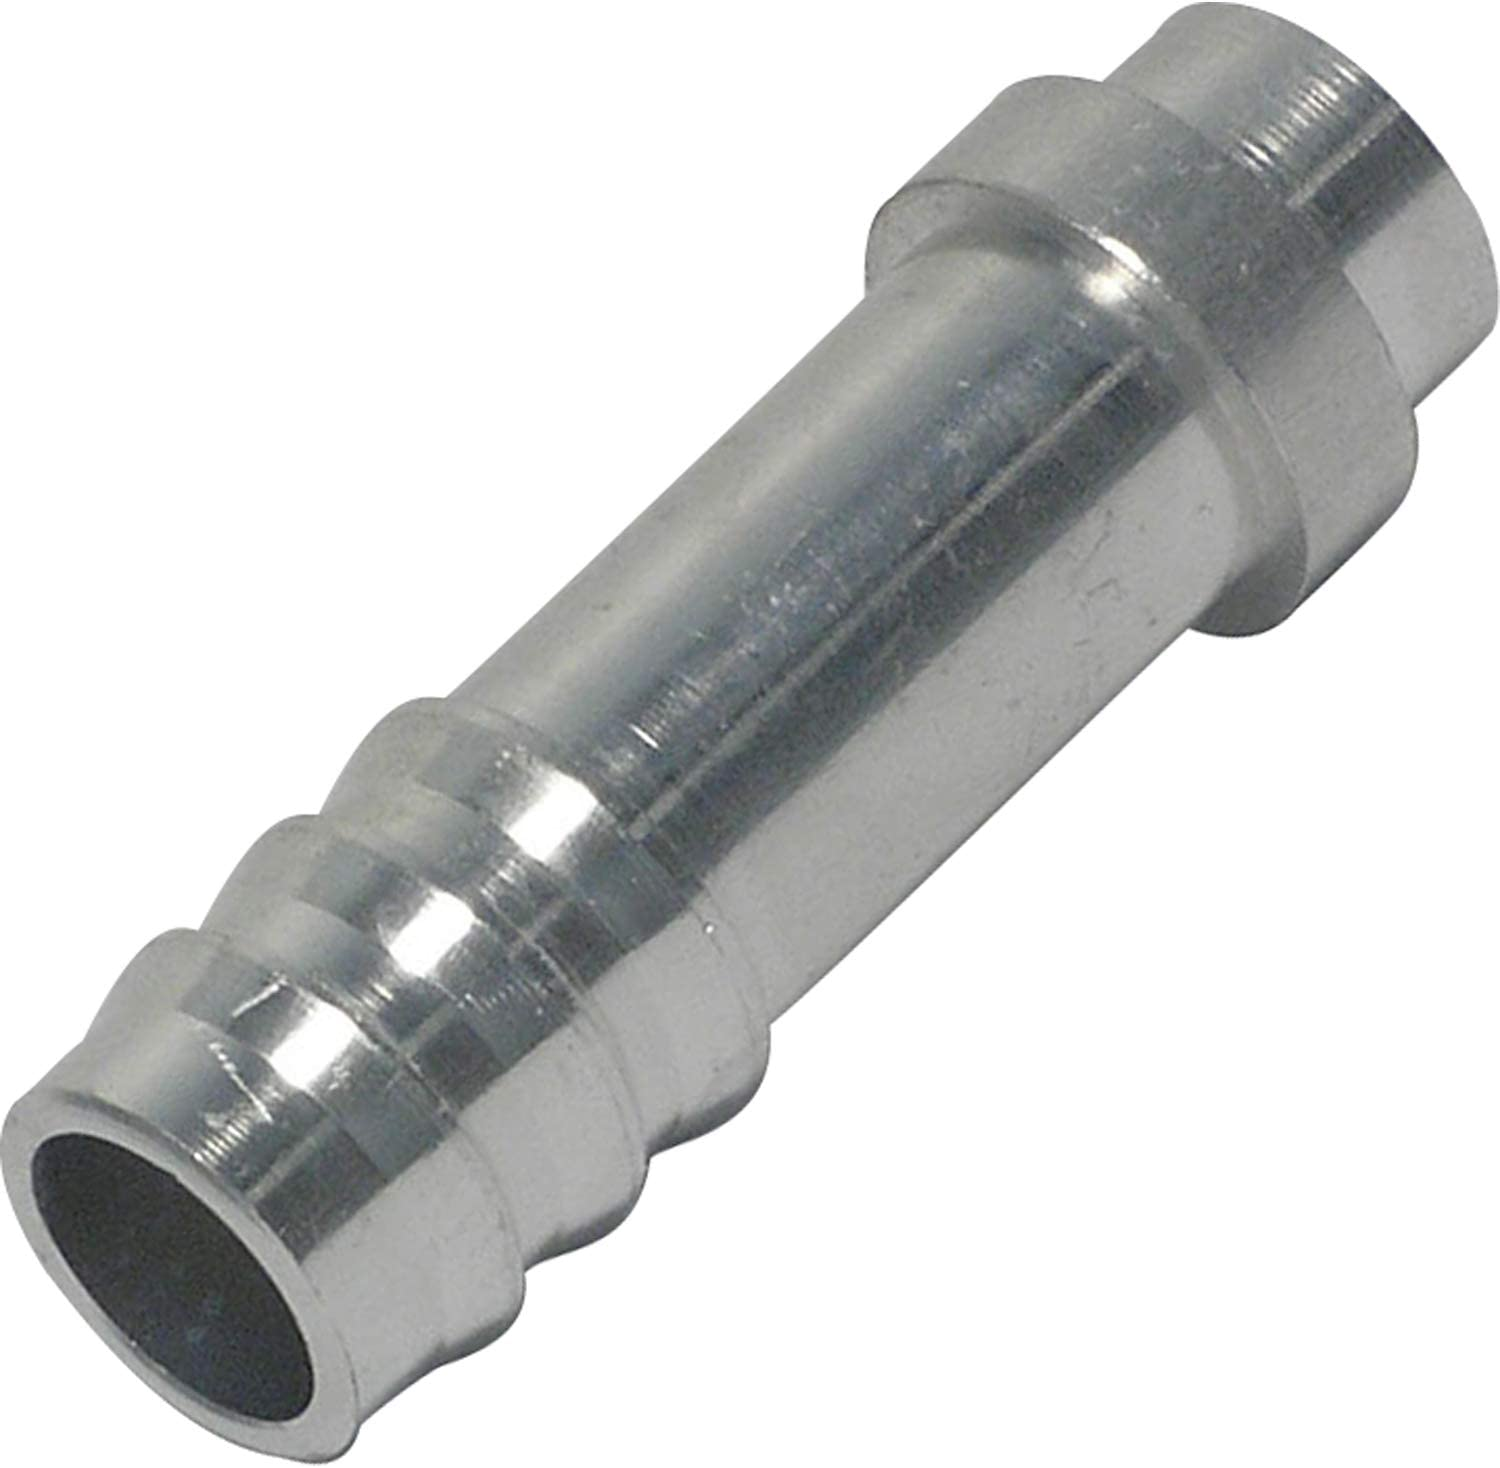 Universal Air Conditioner FT 0003C A//C Refrigerant Hose Fitting